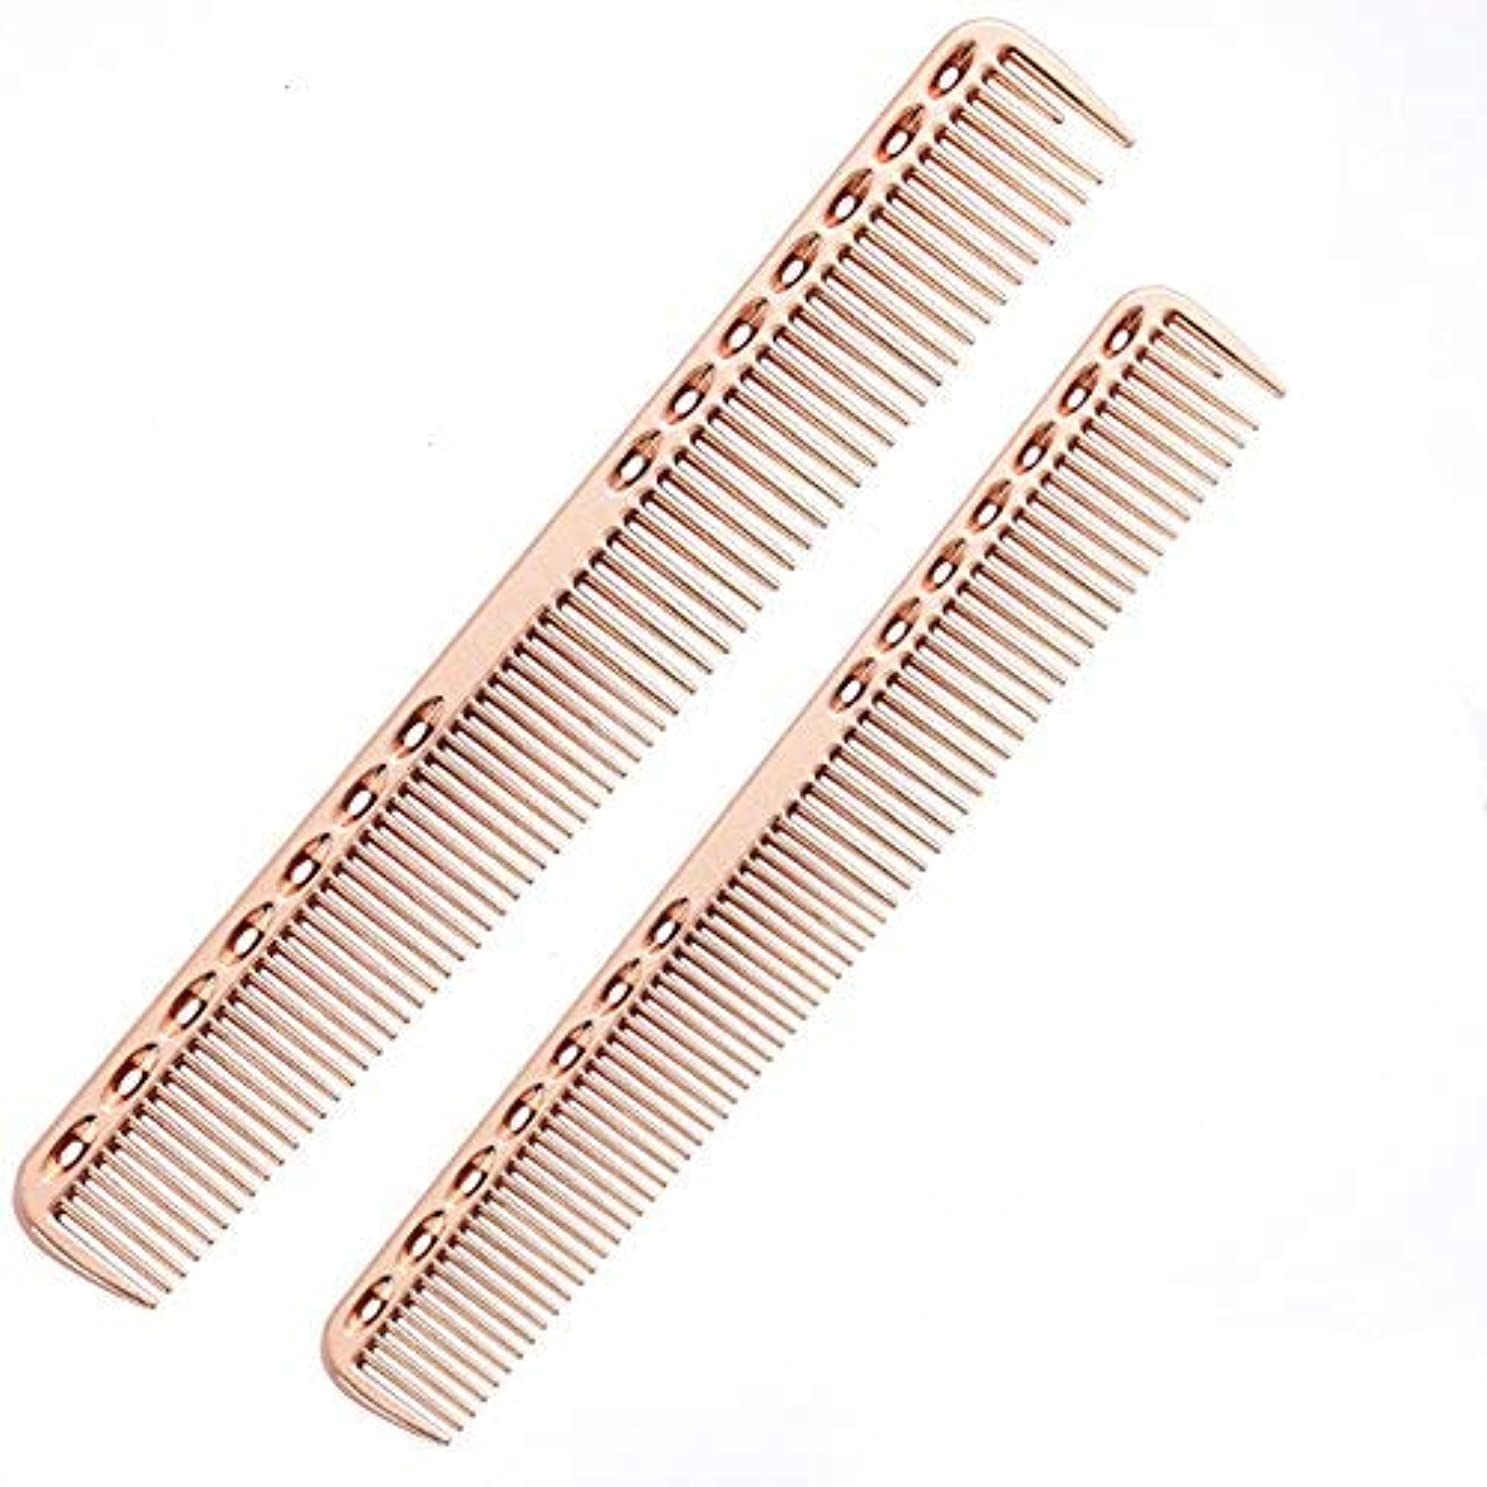 SMITH CHU Professional Space Aluminum Dressing Combs for Women - Best Styling Comb for Long,Wet or Curly, Reduce...